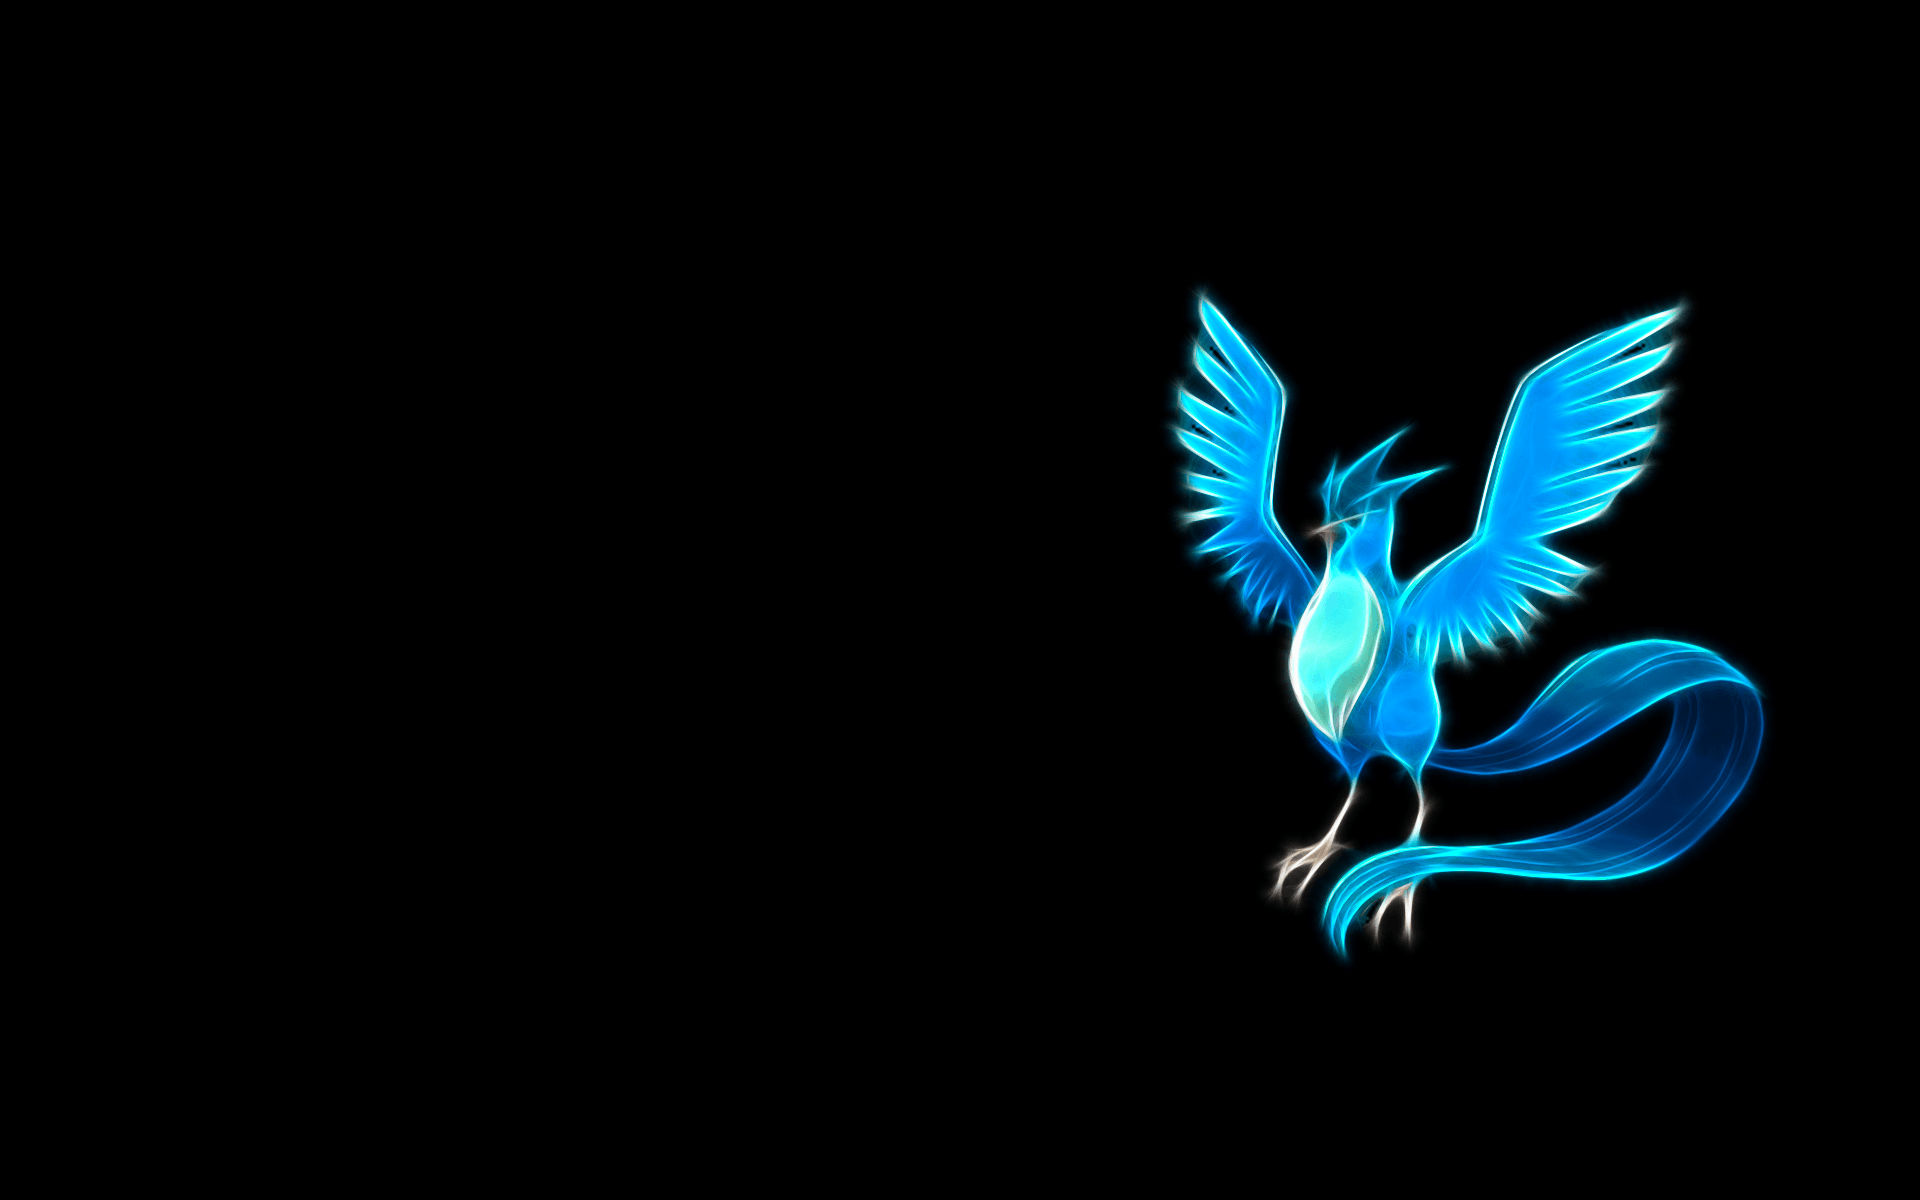 Hd Pokemon Trainer Girl Wallpaper Articuno Wallpapers Wallpaper Cave